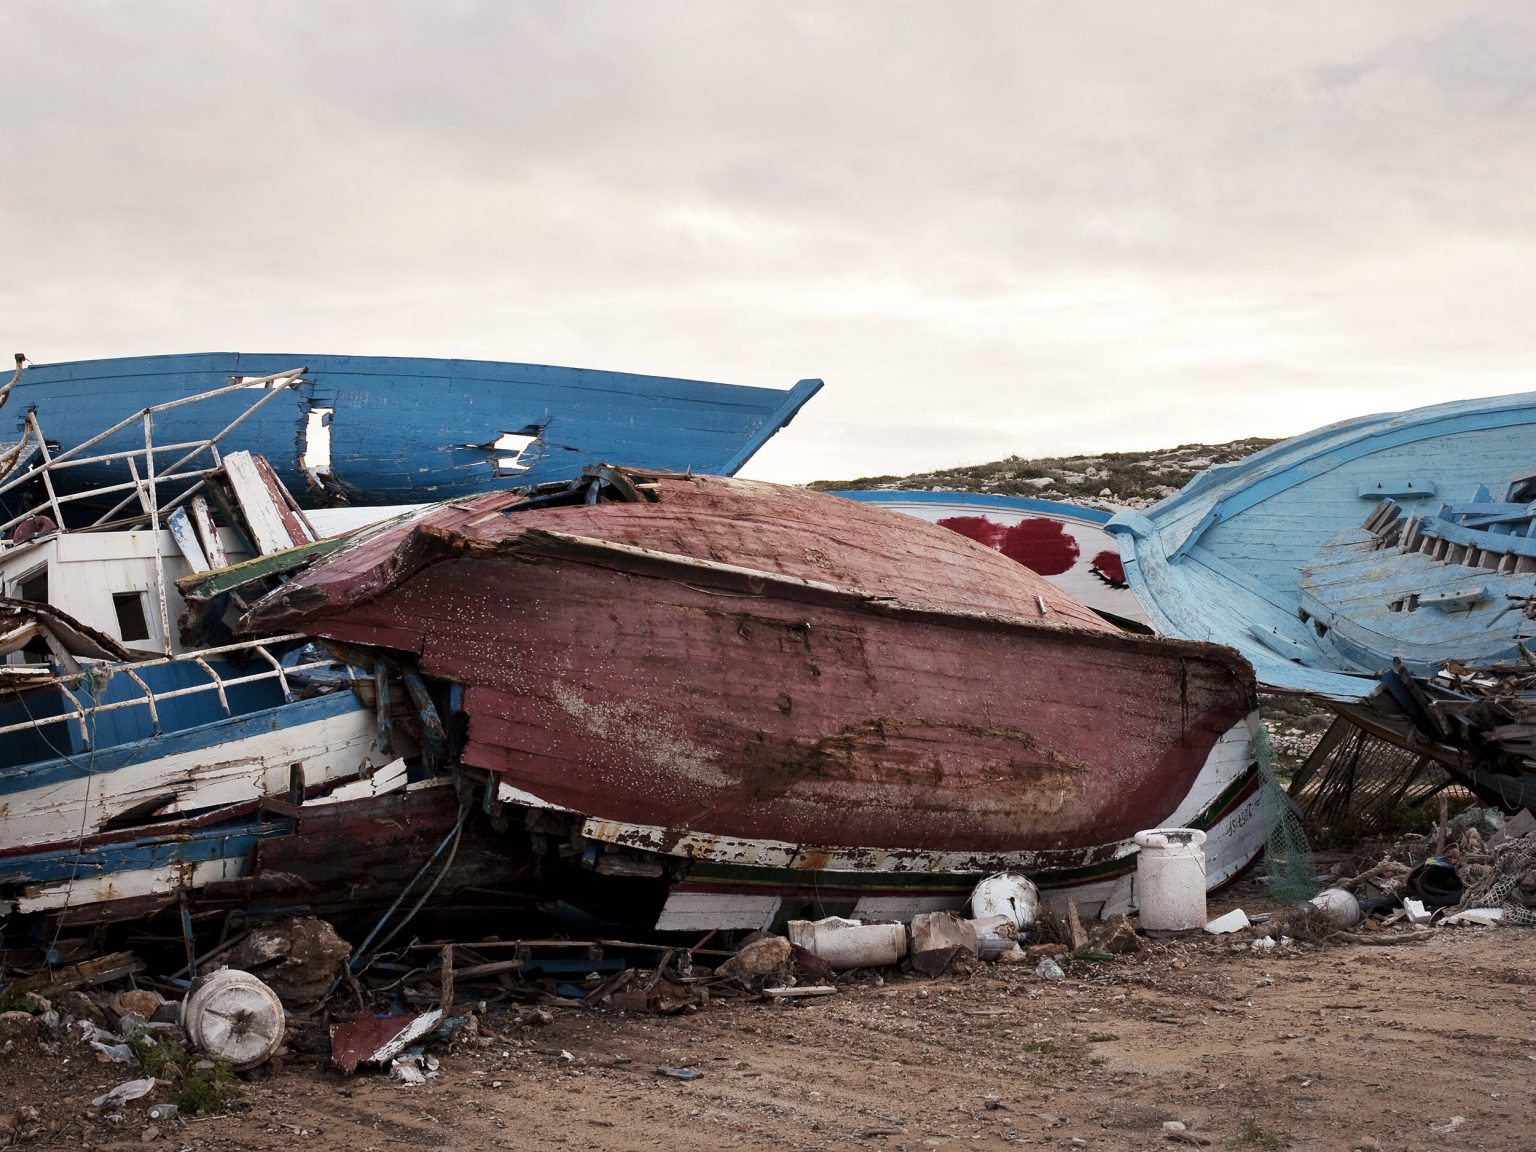 """A view of the so called """"boat cemetery"""", a landfill where boat utilized by migrants to reach Lampedusa used to be stocked. A recent malicious fire had destroyed most of the boats, which are now being stocked in a military area of the island."""